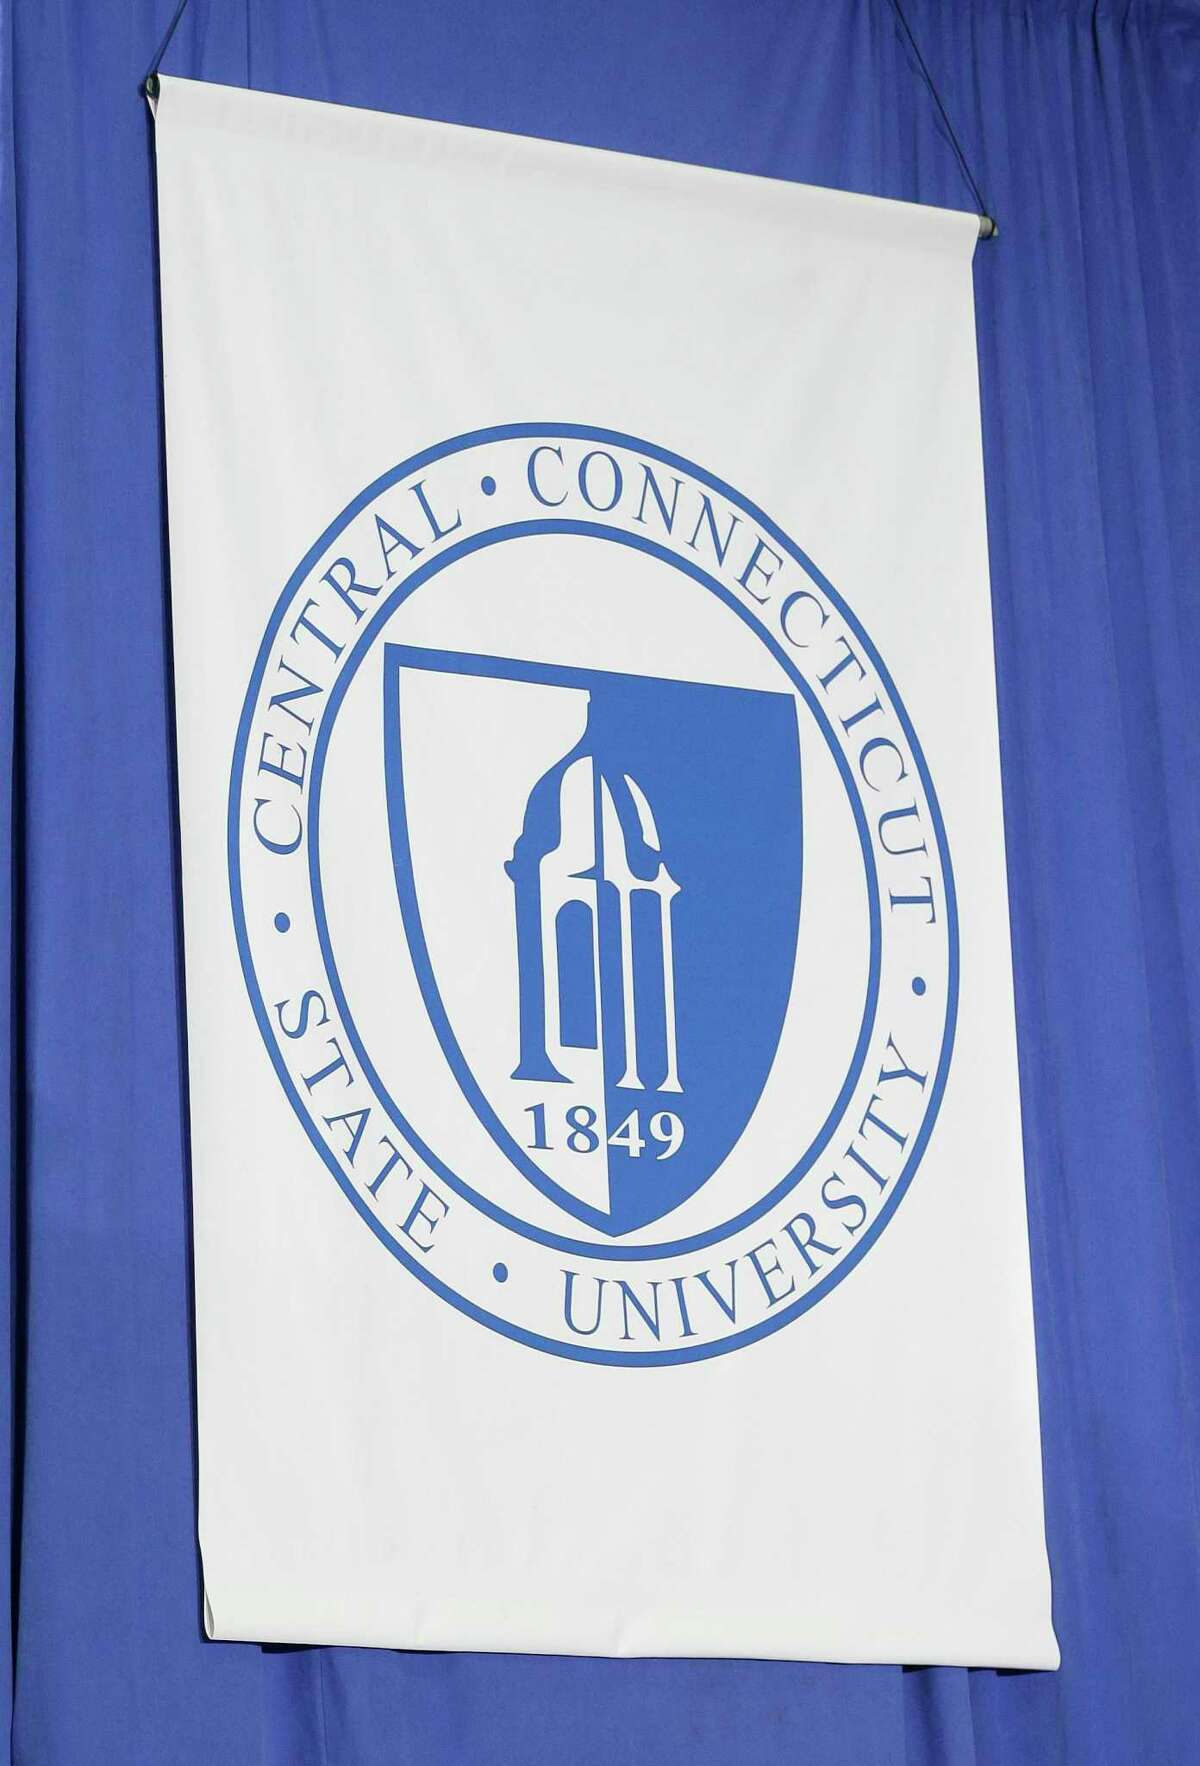 Central Connecticut State University in New Britain Central Connecticut State University, New Britain No. 32 in top public schools north No. 105 in regional universities north No. 116 in top performers on social mobility No. 157 in best undergraduate engineering programs